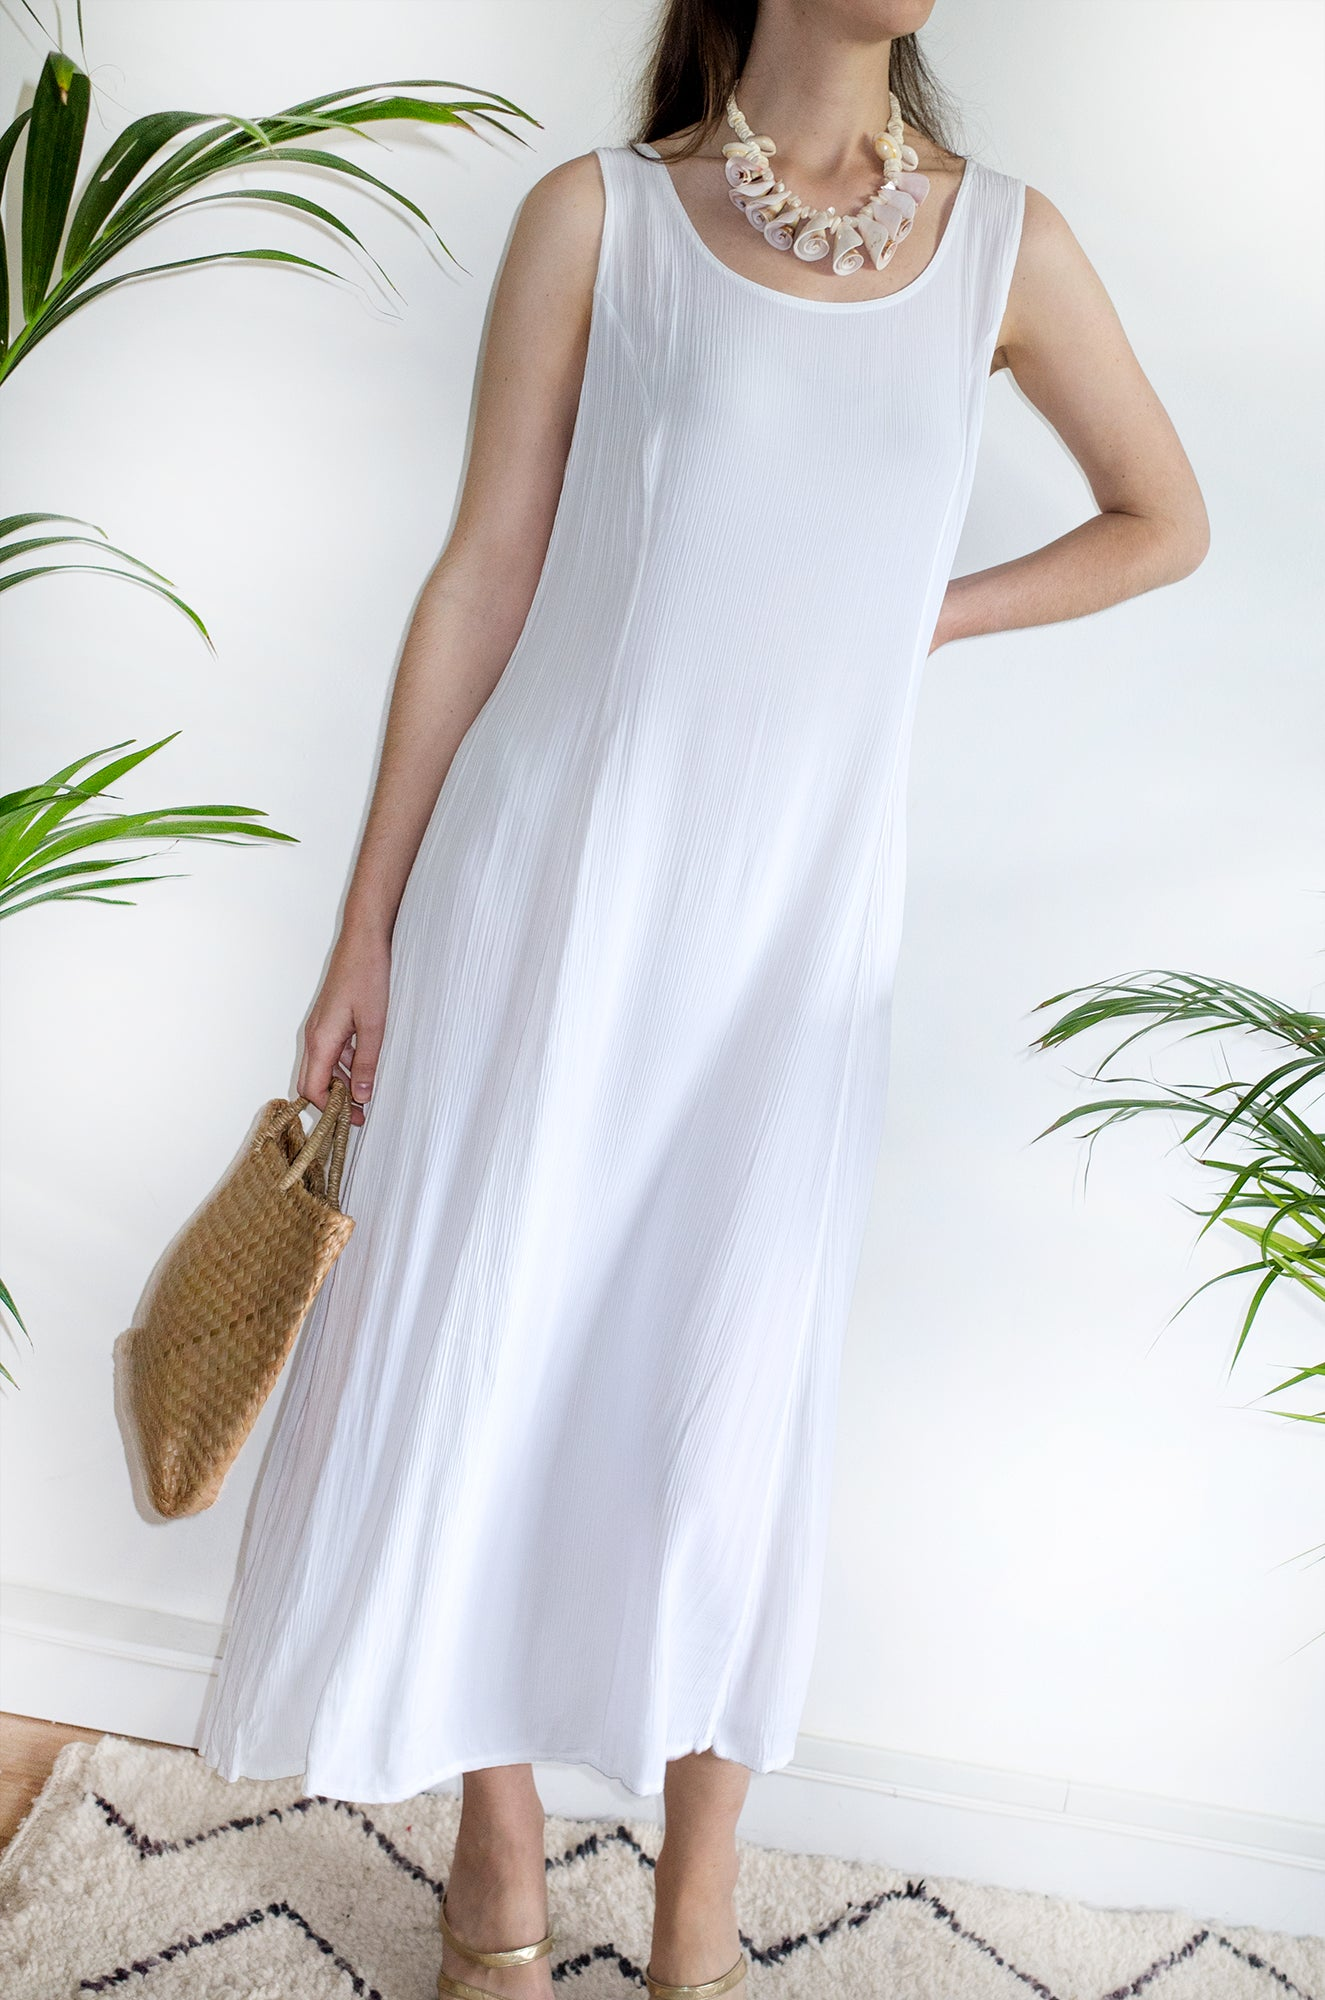 A vintage white sleeveless beach dress from 1994.